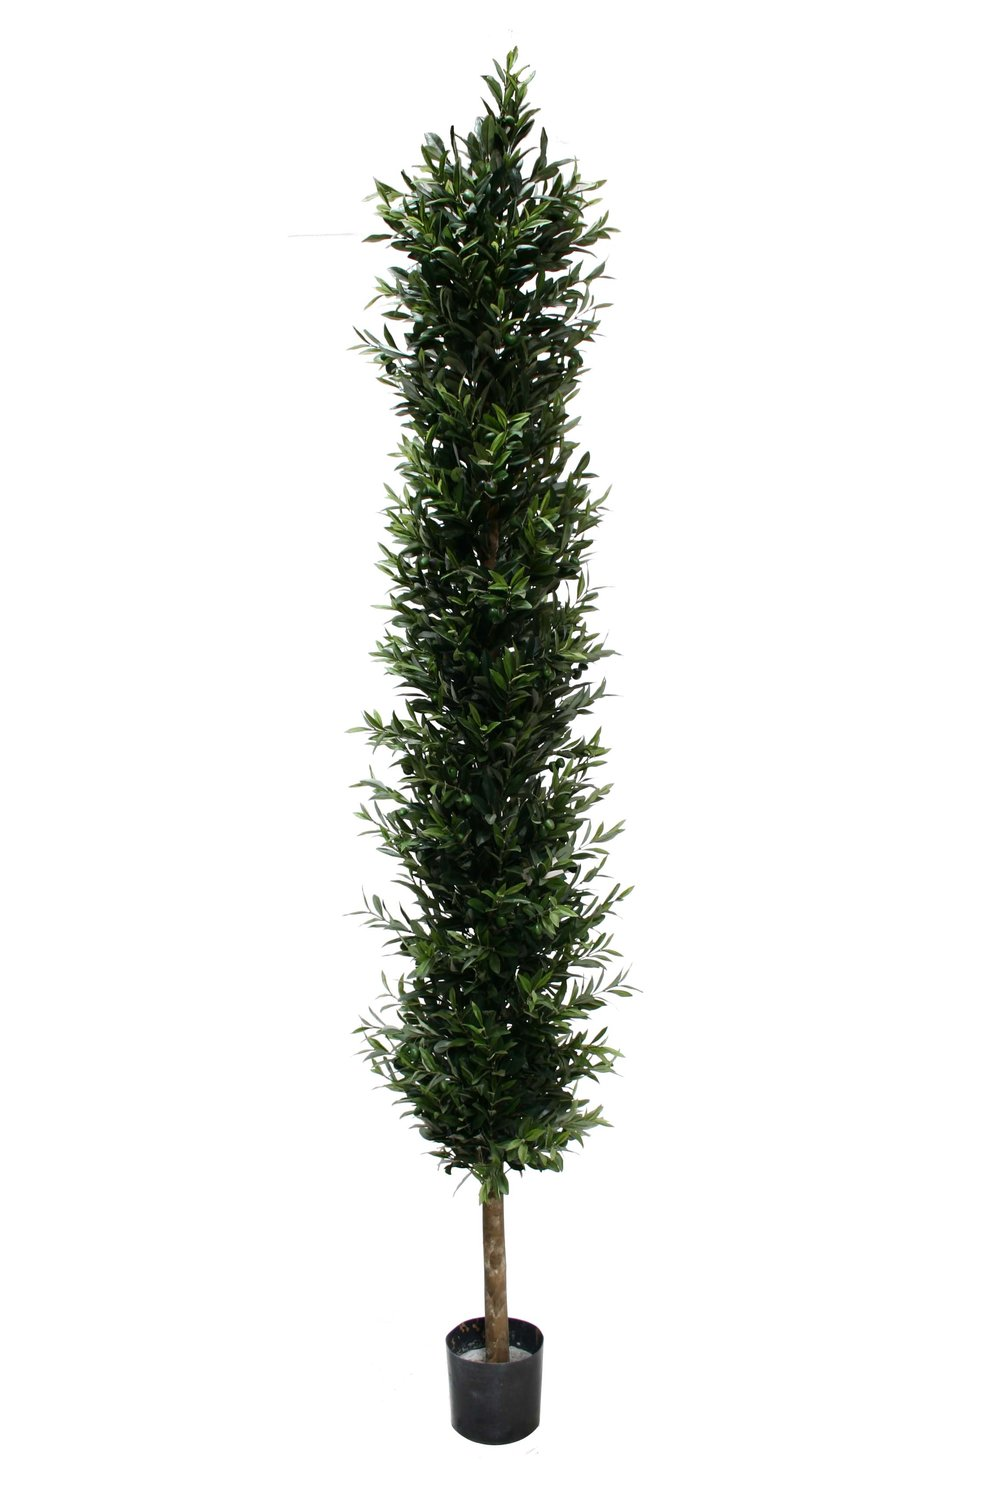 Cypress Tower hedge